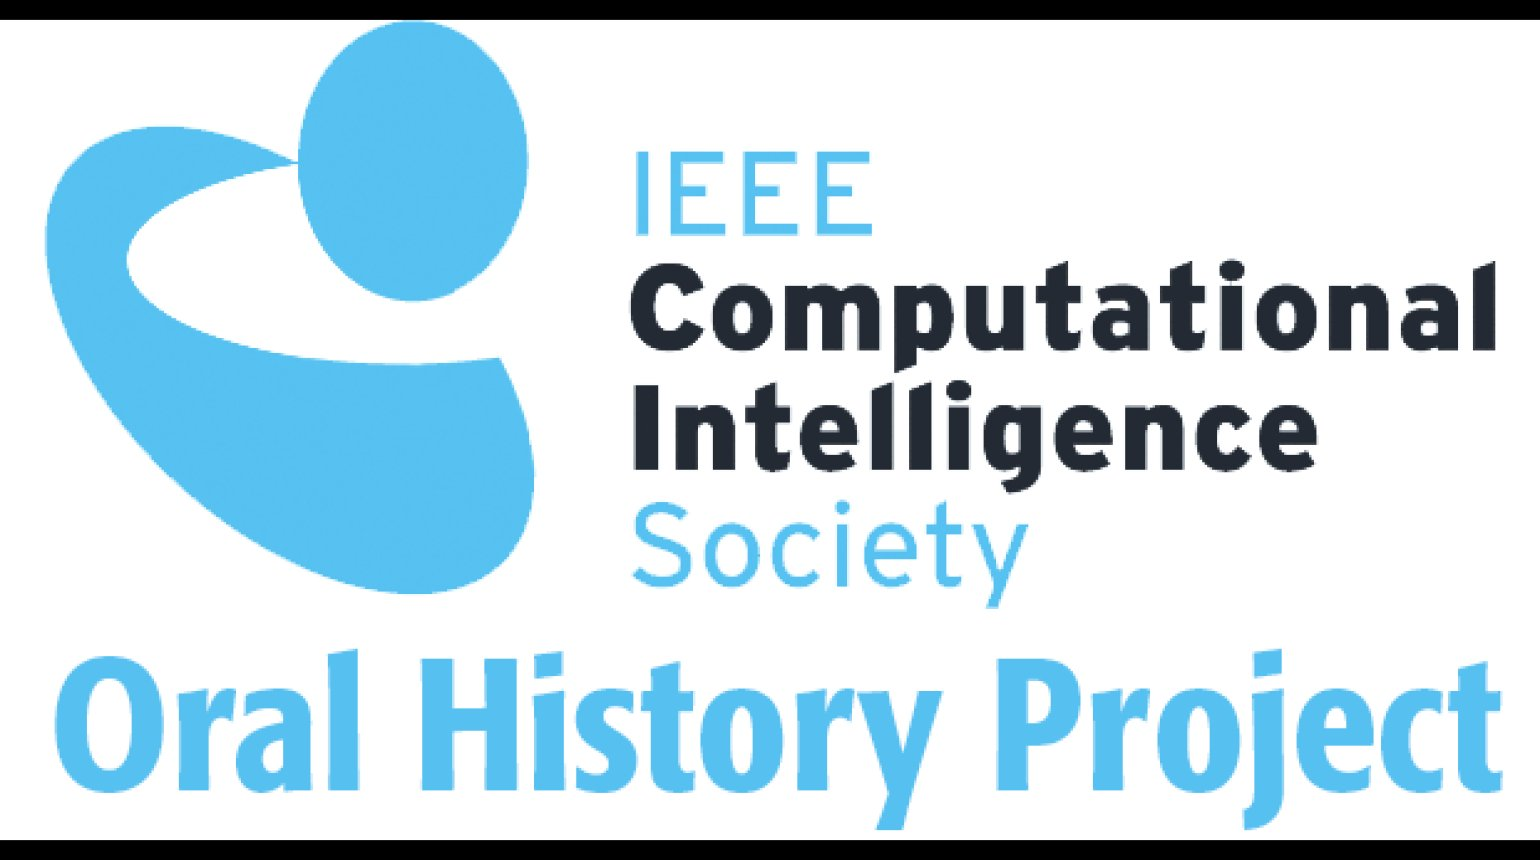 IEEE CIS Oral History Project